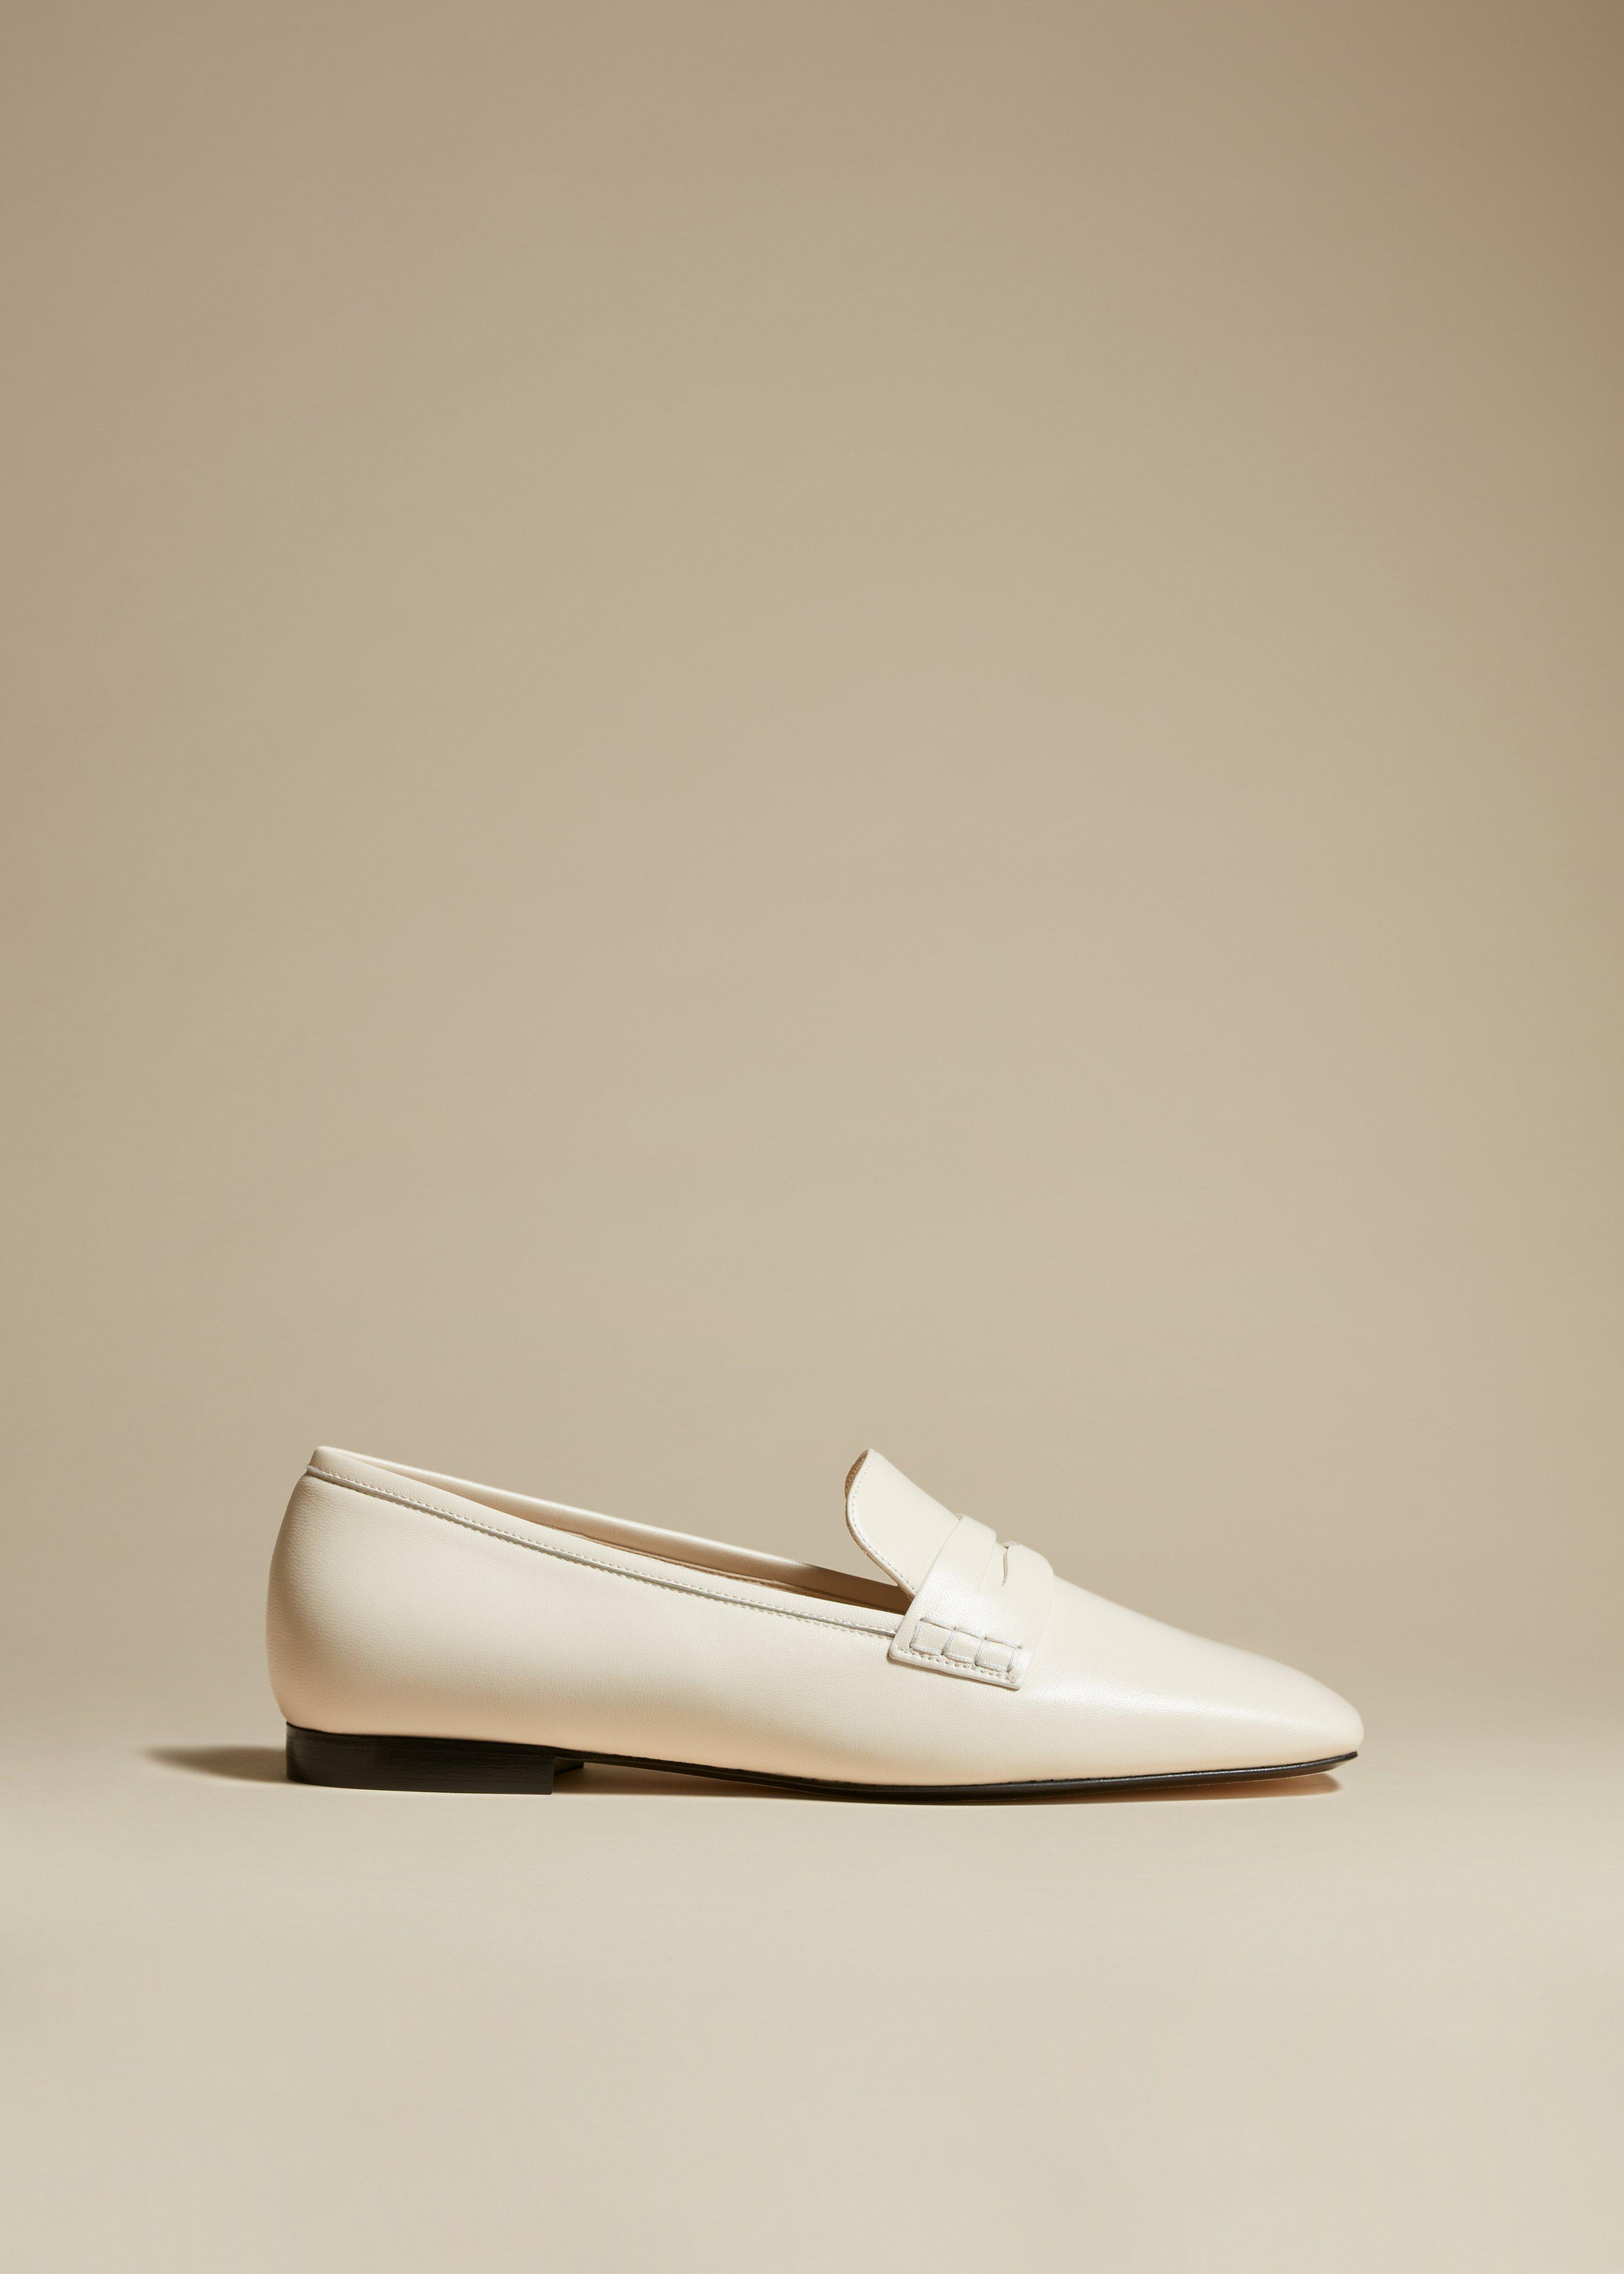 The Carlisle Loafer in Cream Leather